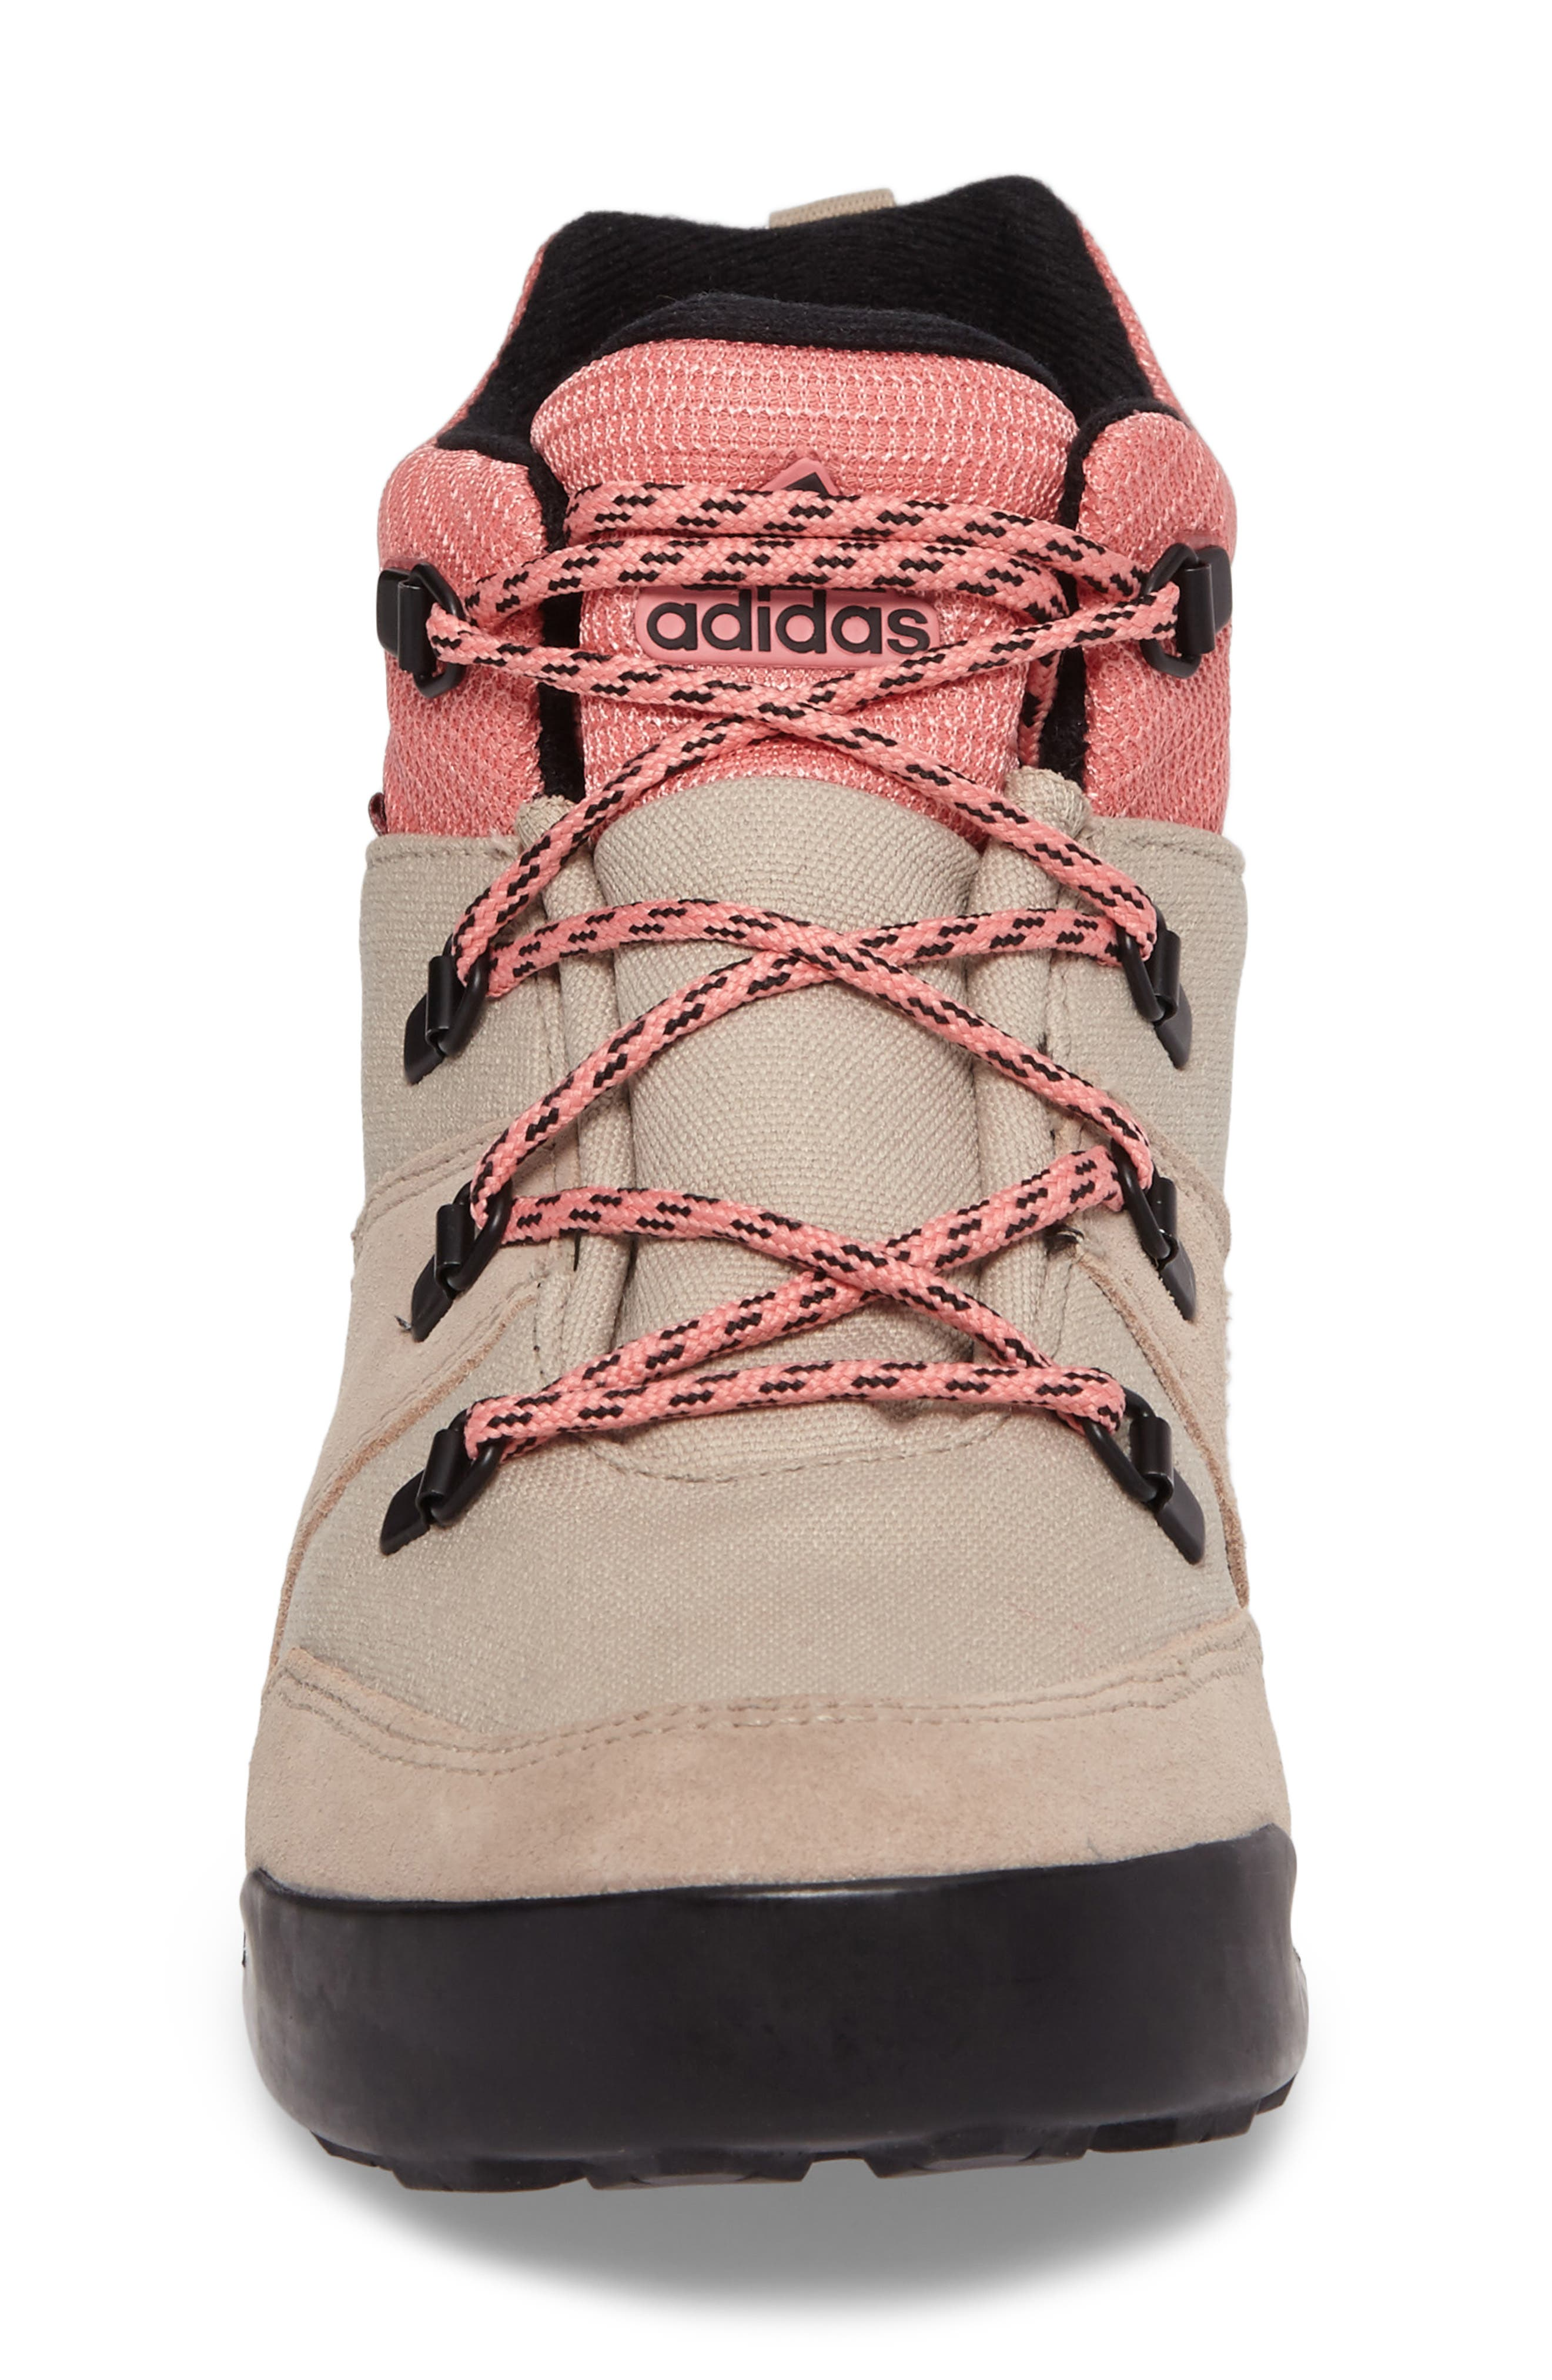 Snowpitch Insulated Sneaker Boot,                             Alternate thumbnail 4, color,                             Icey Pink/ Khaki/ Energy Pink